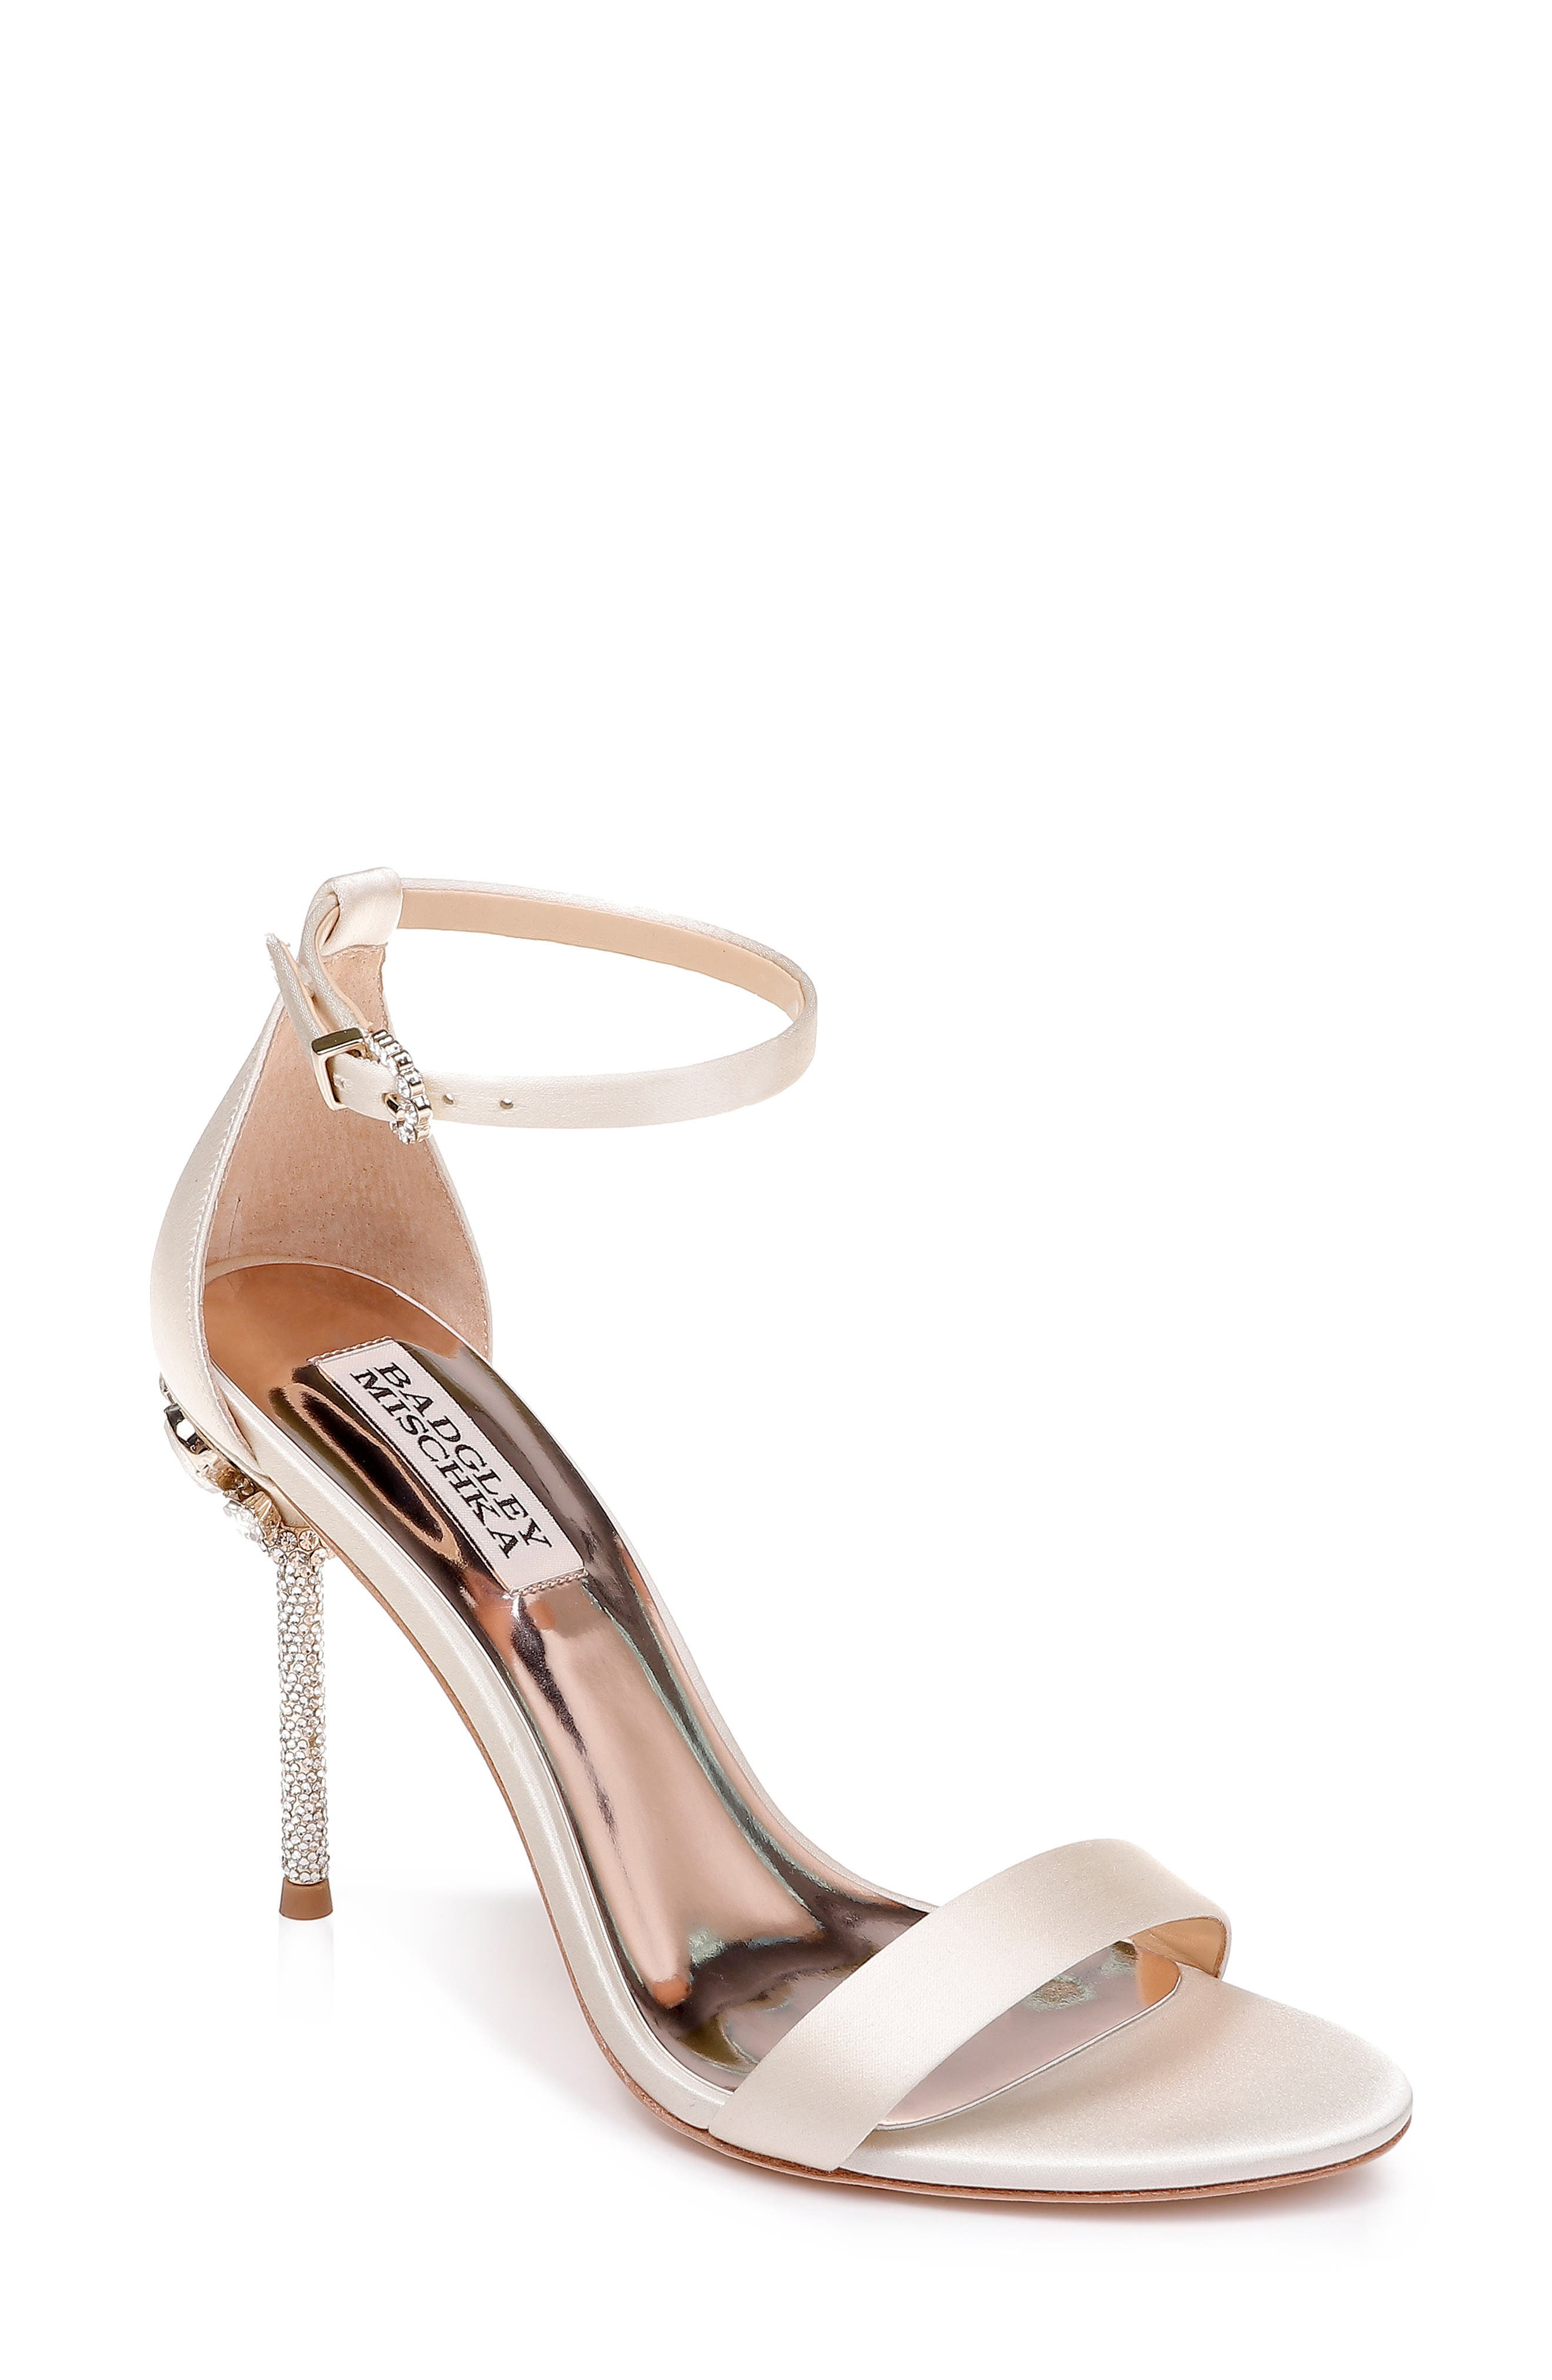 Badgley Mischka Vicia Crystal Embellished Heel Sandal, Ivory